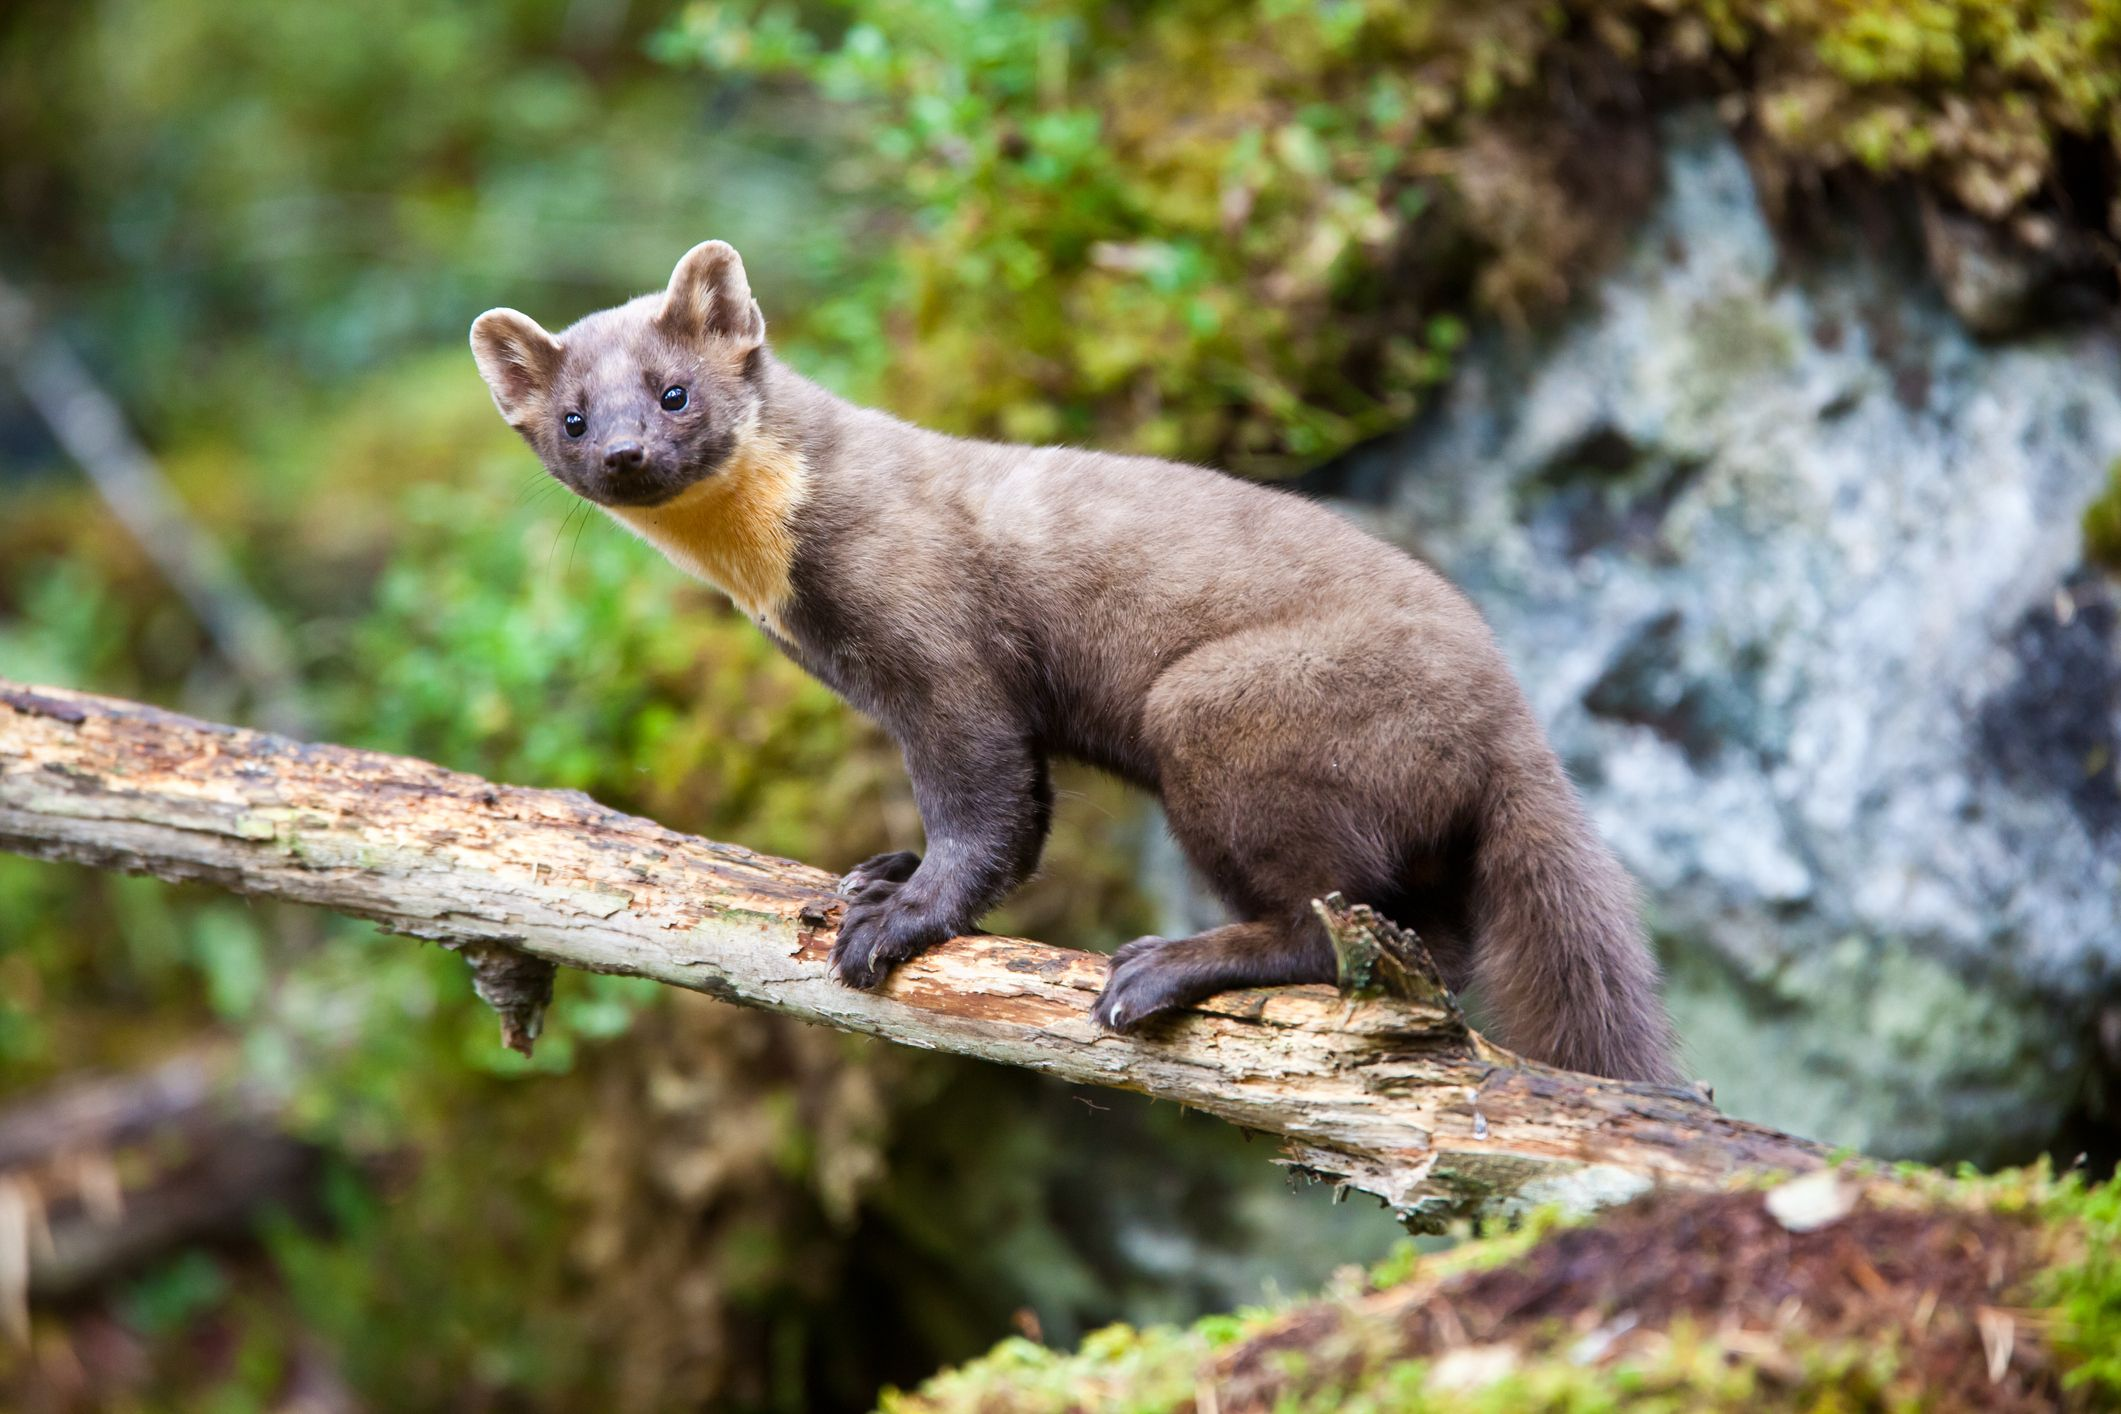 Pine martens have been successfully released into the Forest of Dean